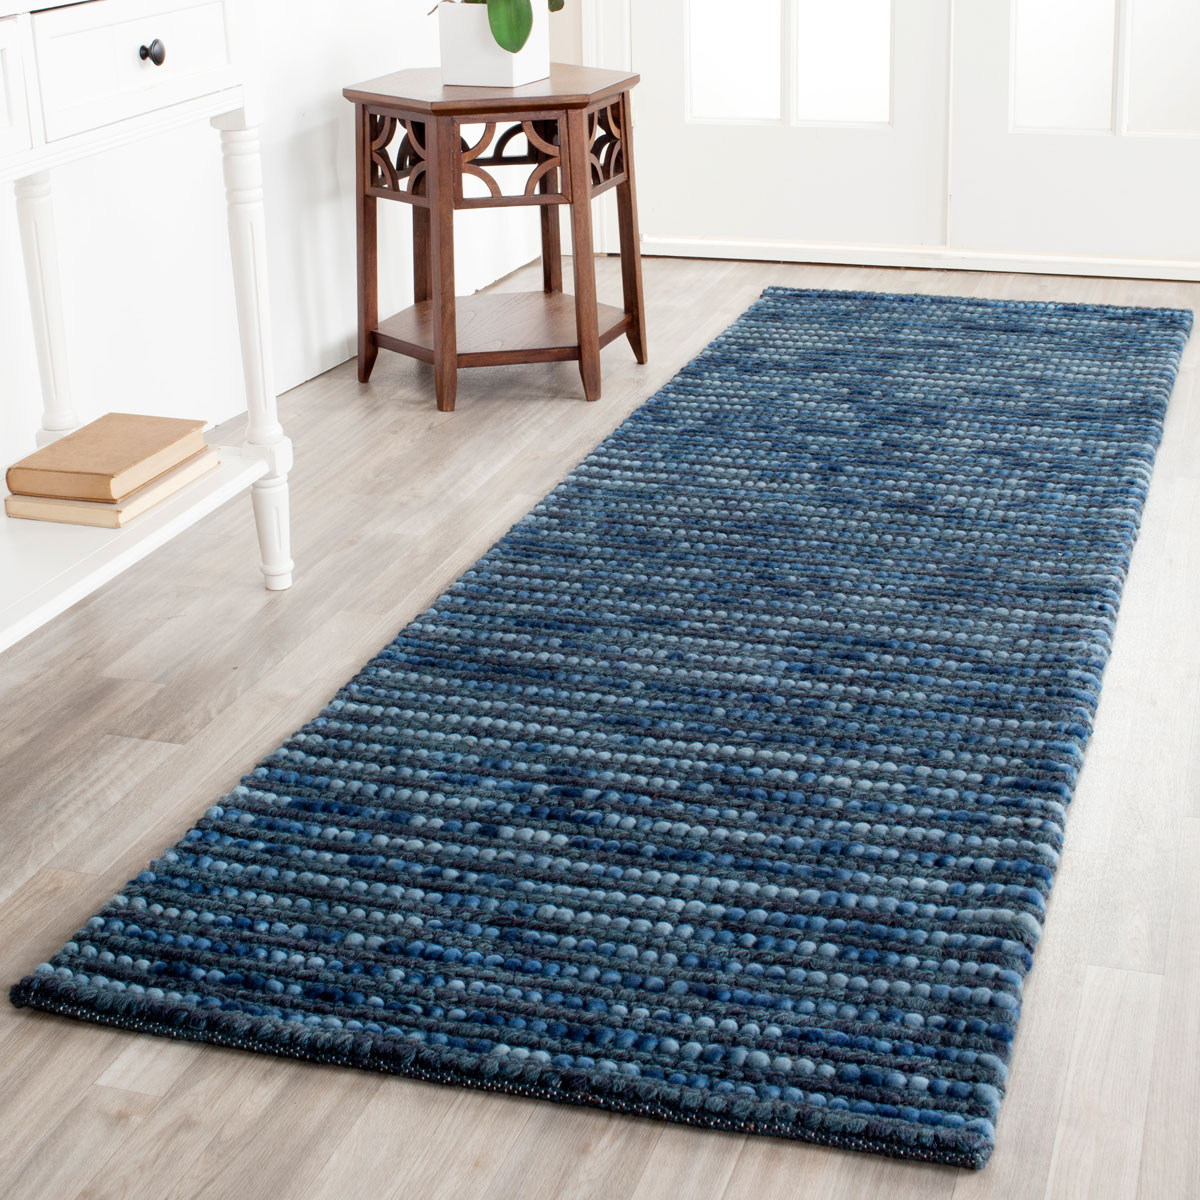 Rug Boh525g Bohemian Area Rugs By Safavieh